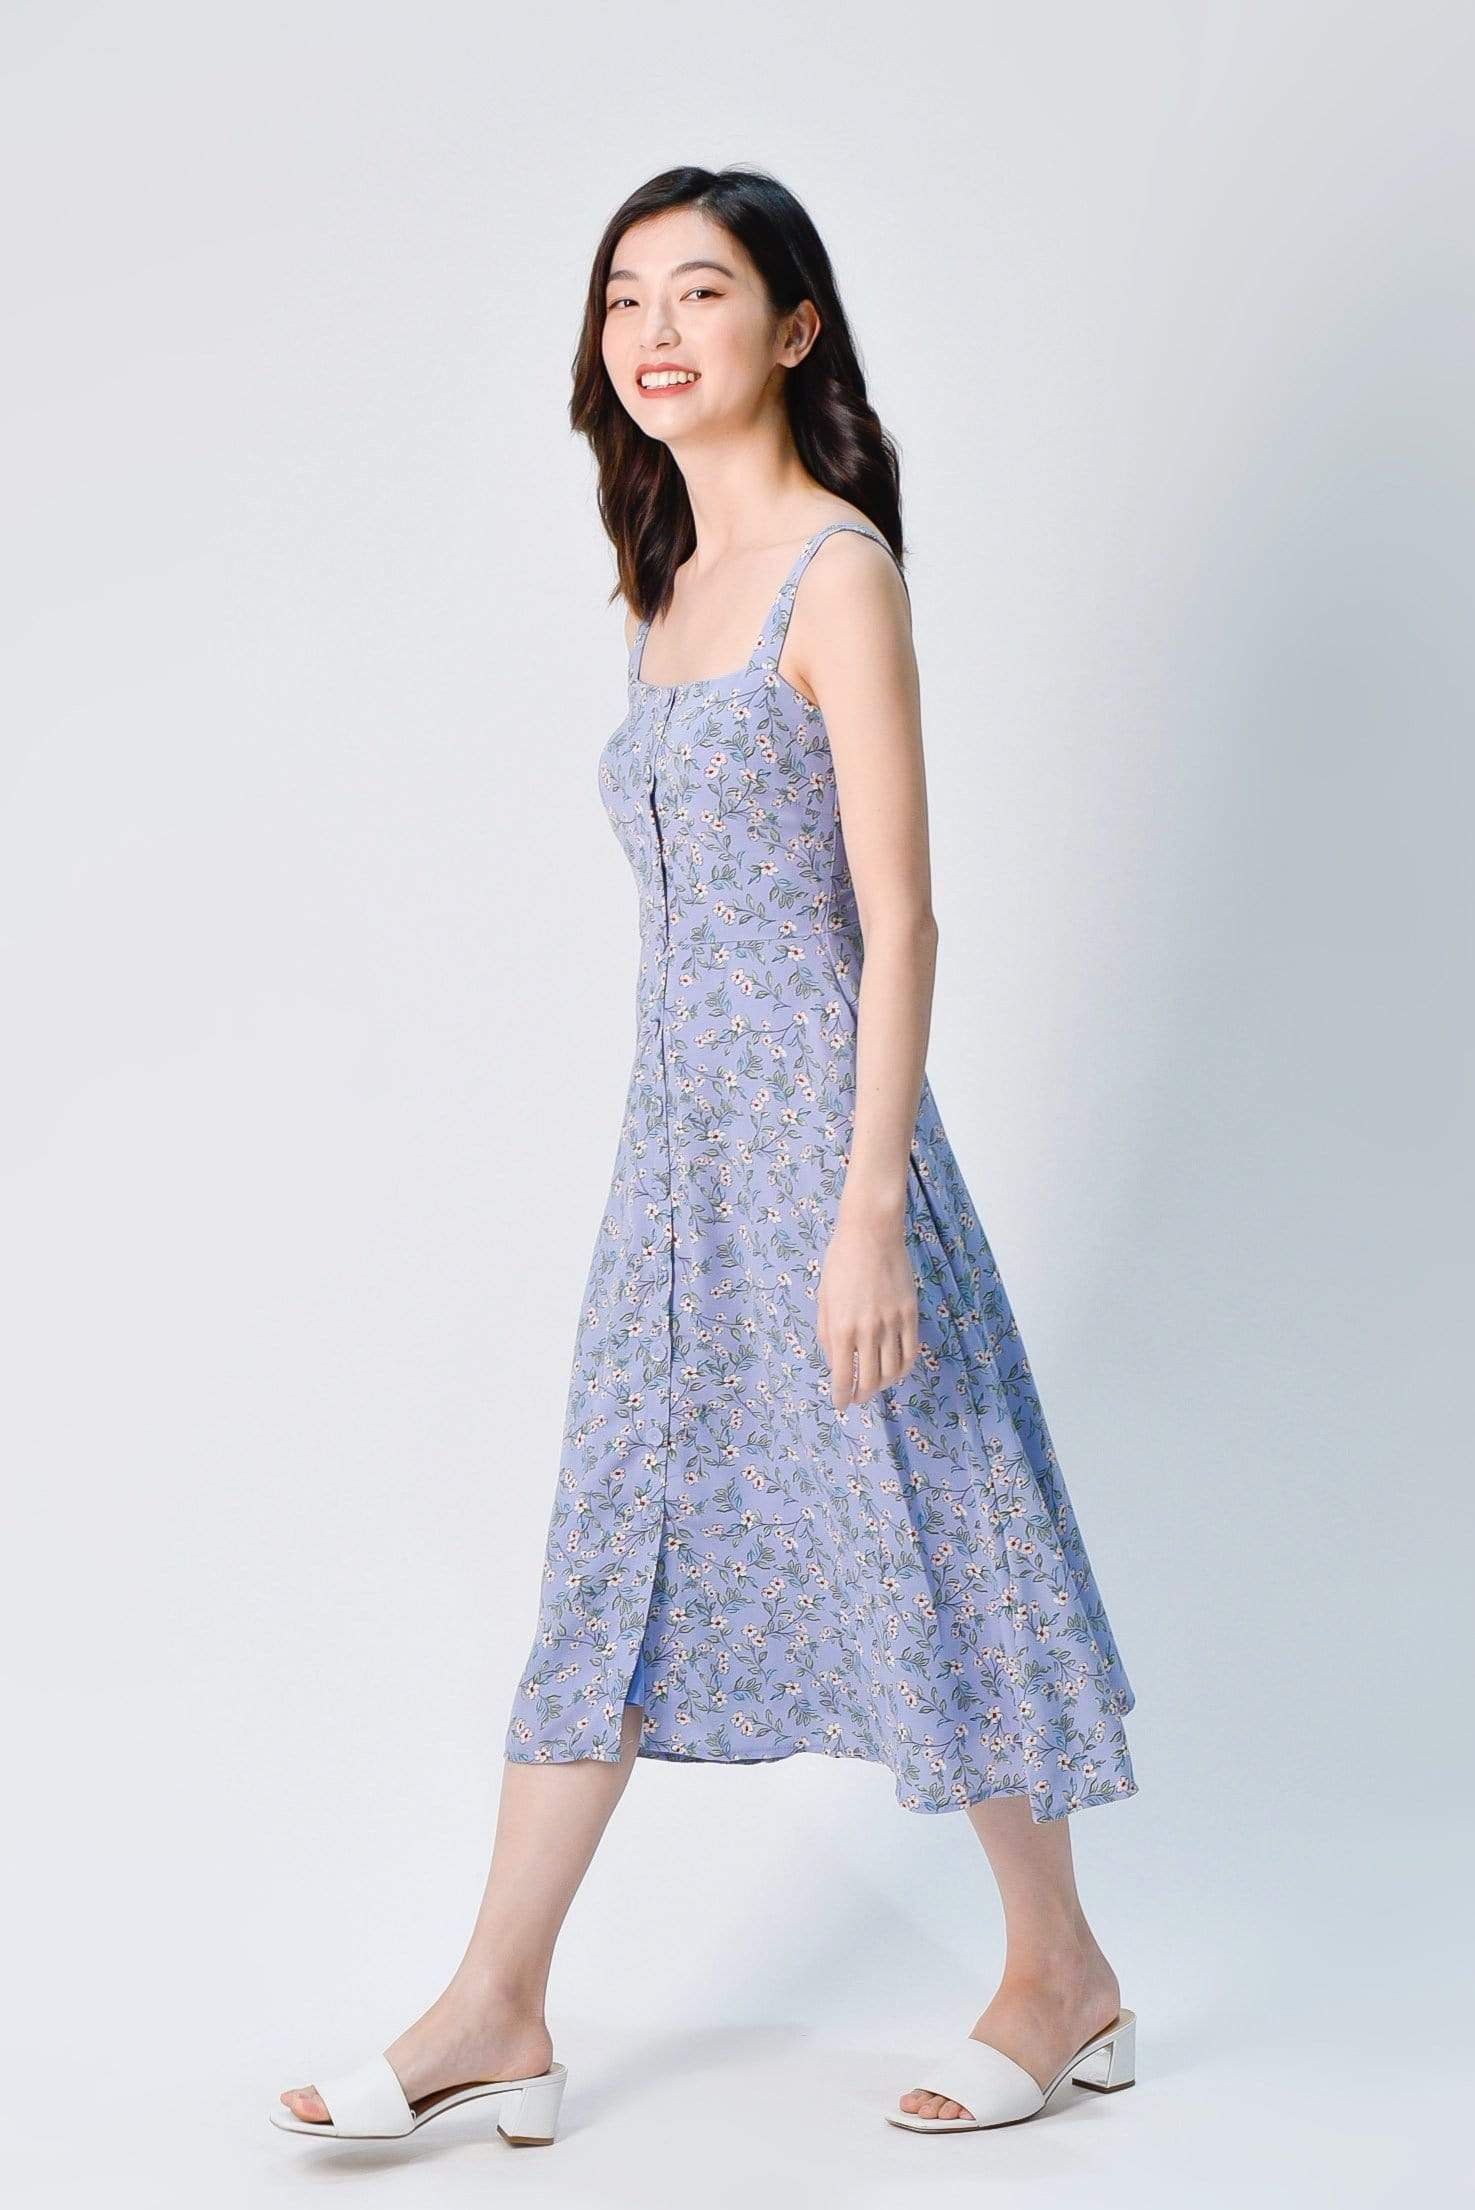 CALLA THICK-STRAP BUTTONED DRESS IN PERIWINKLE FLORAL